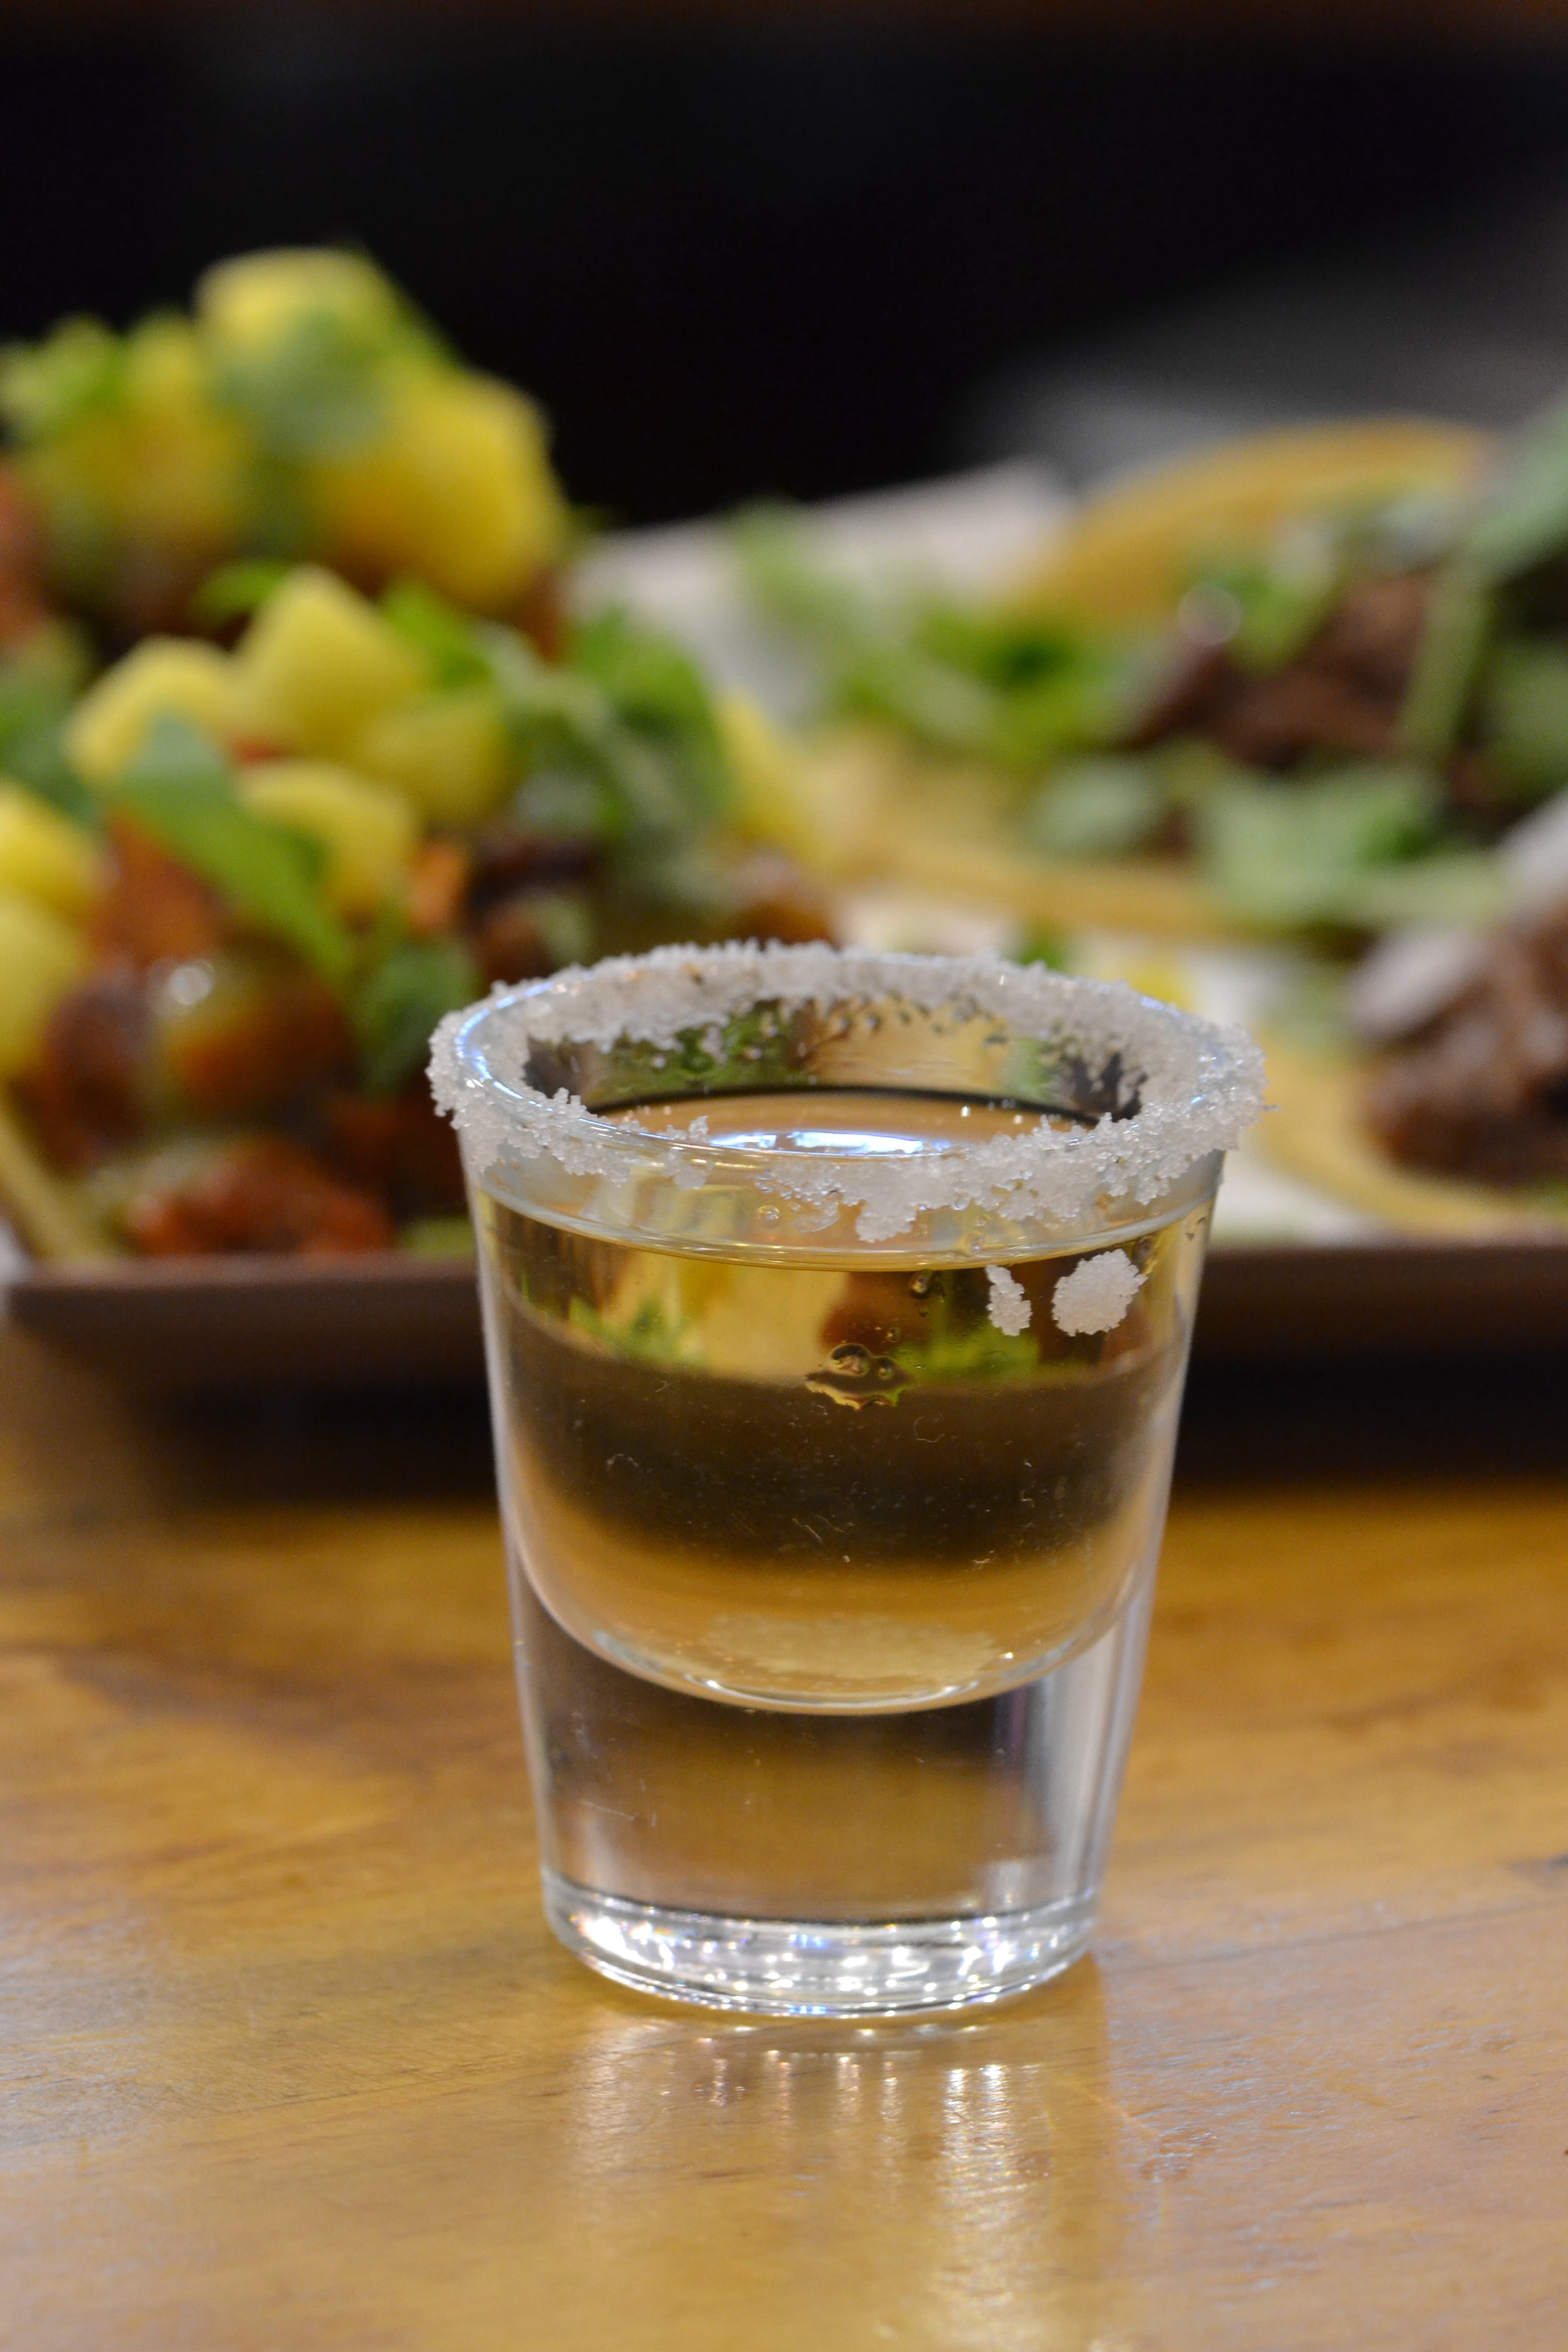 Free stock photo of a short drink, dinner, drink, drinking